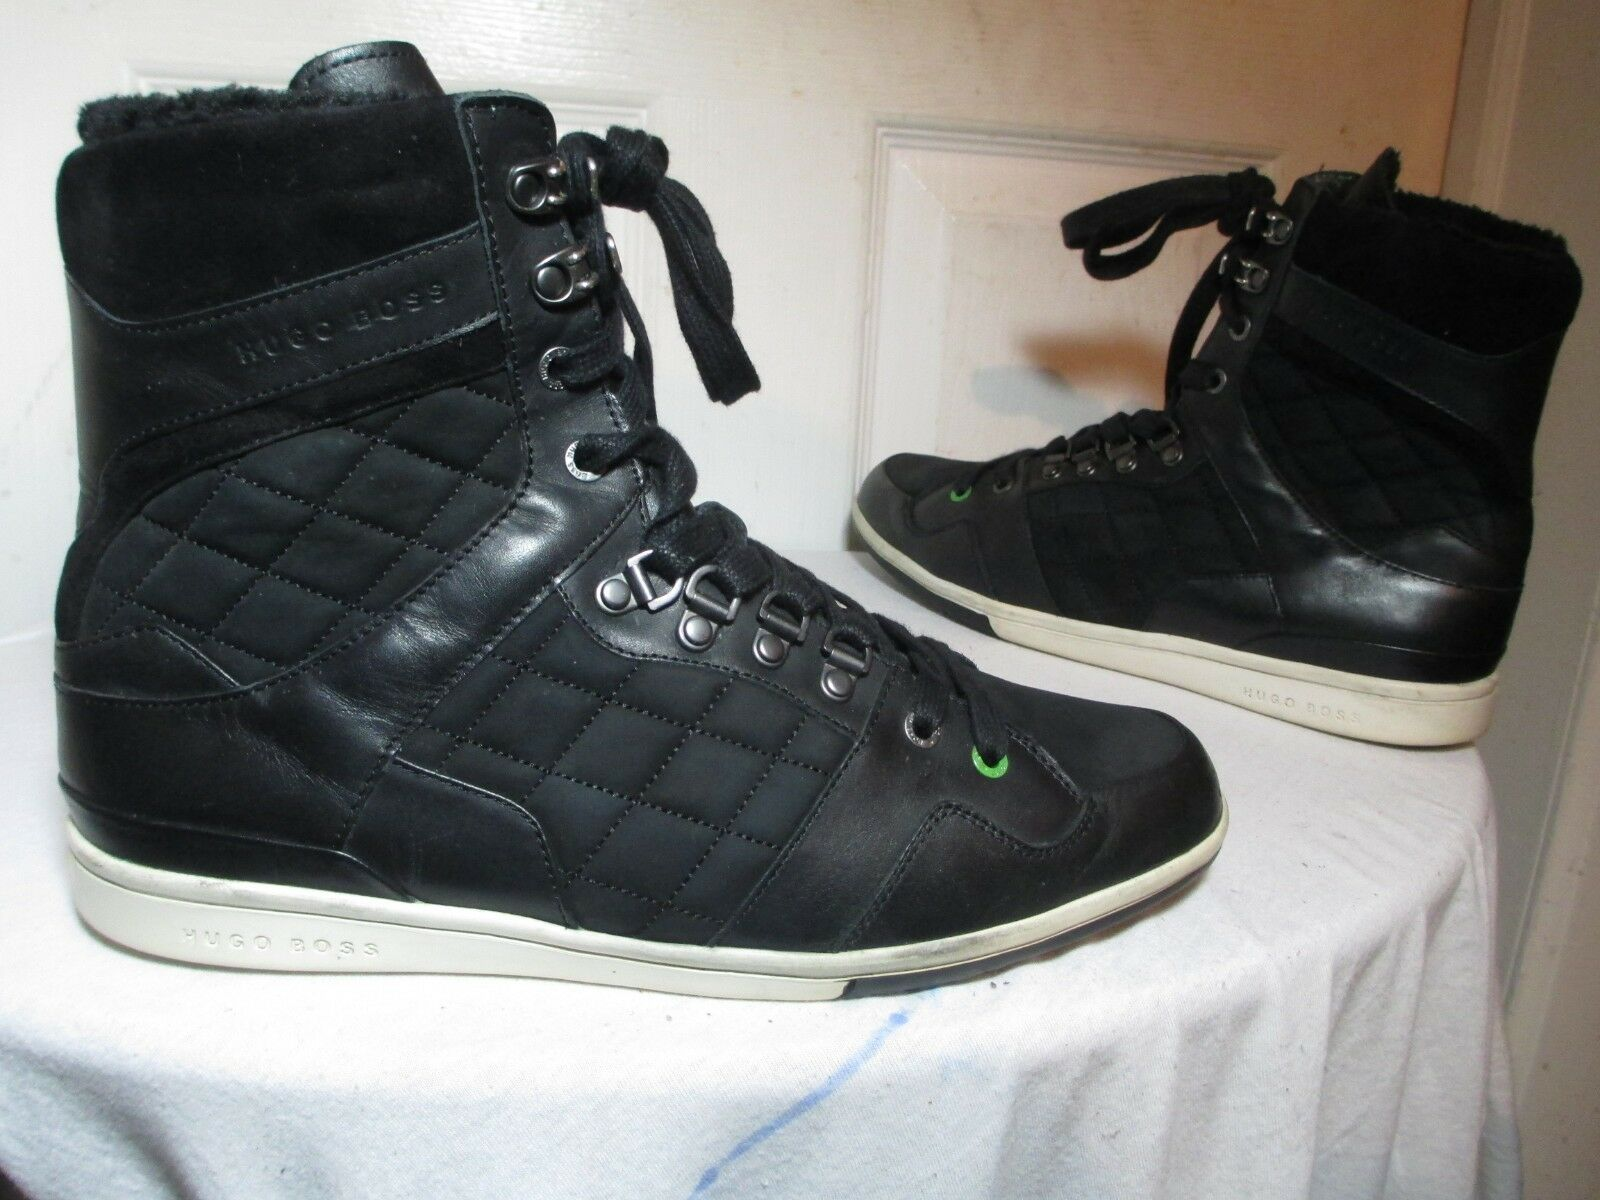 HUGO BOSS MEN'S schwarz QUILTED LEATHER FAUX FUR LINING HIGH TOP Turnschuhe 43 US 10